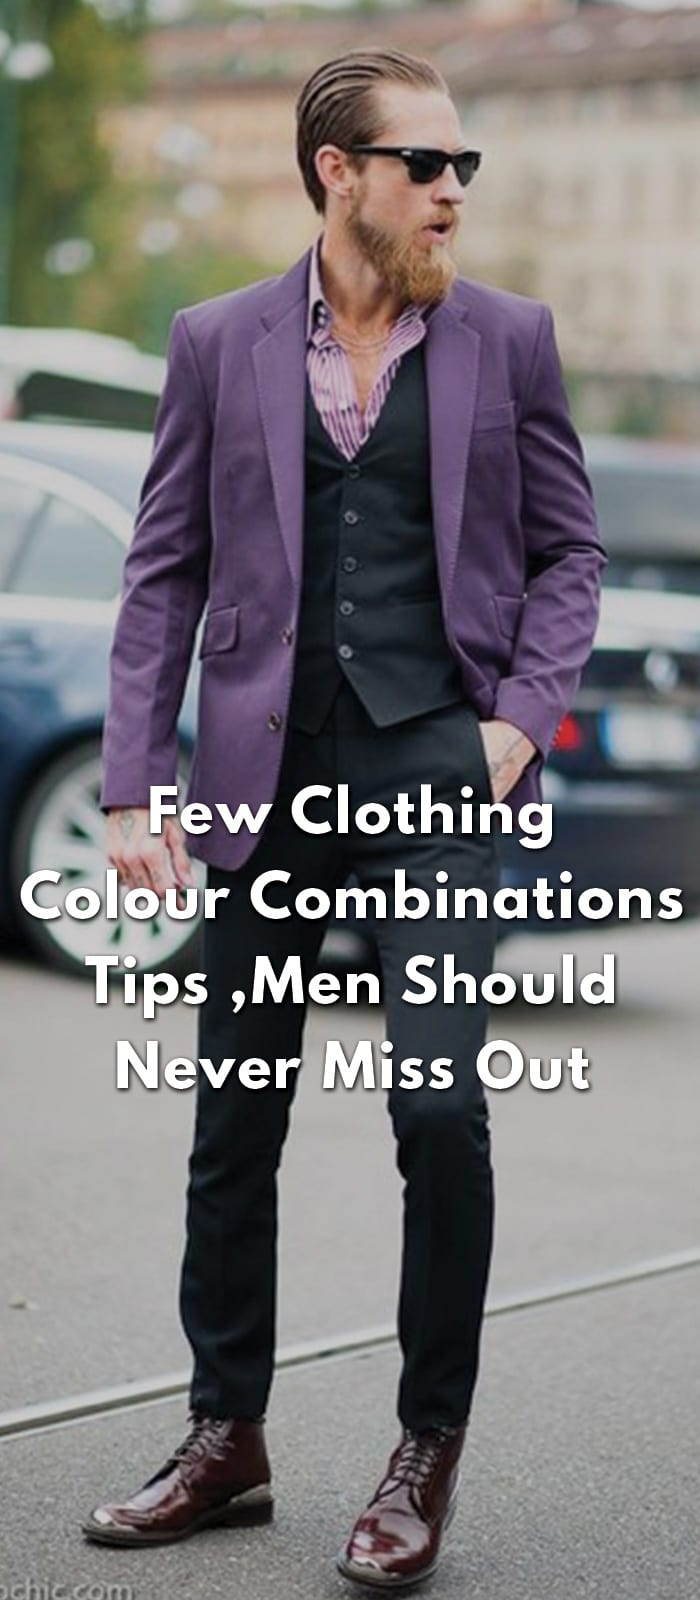 Few-Clothing-Colour-Combinations-Tips-Men-Should-Never-Miss-Out